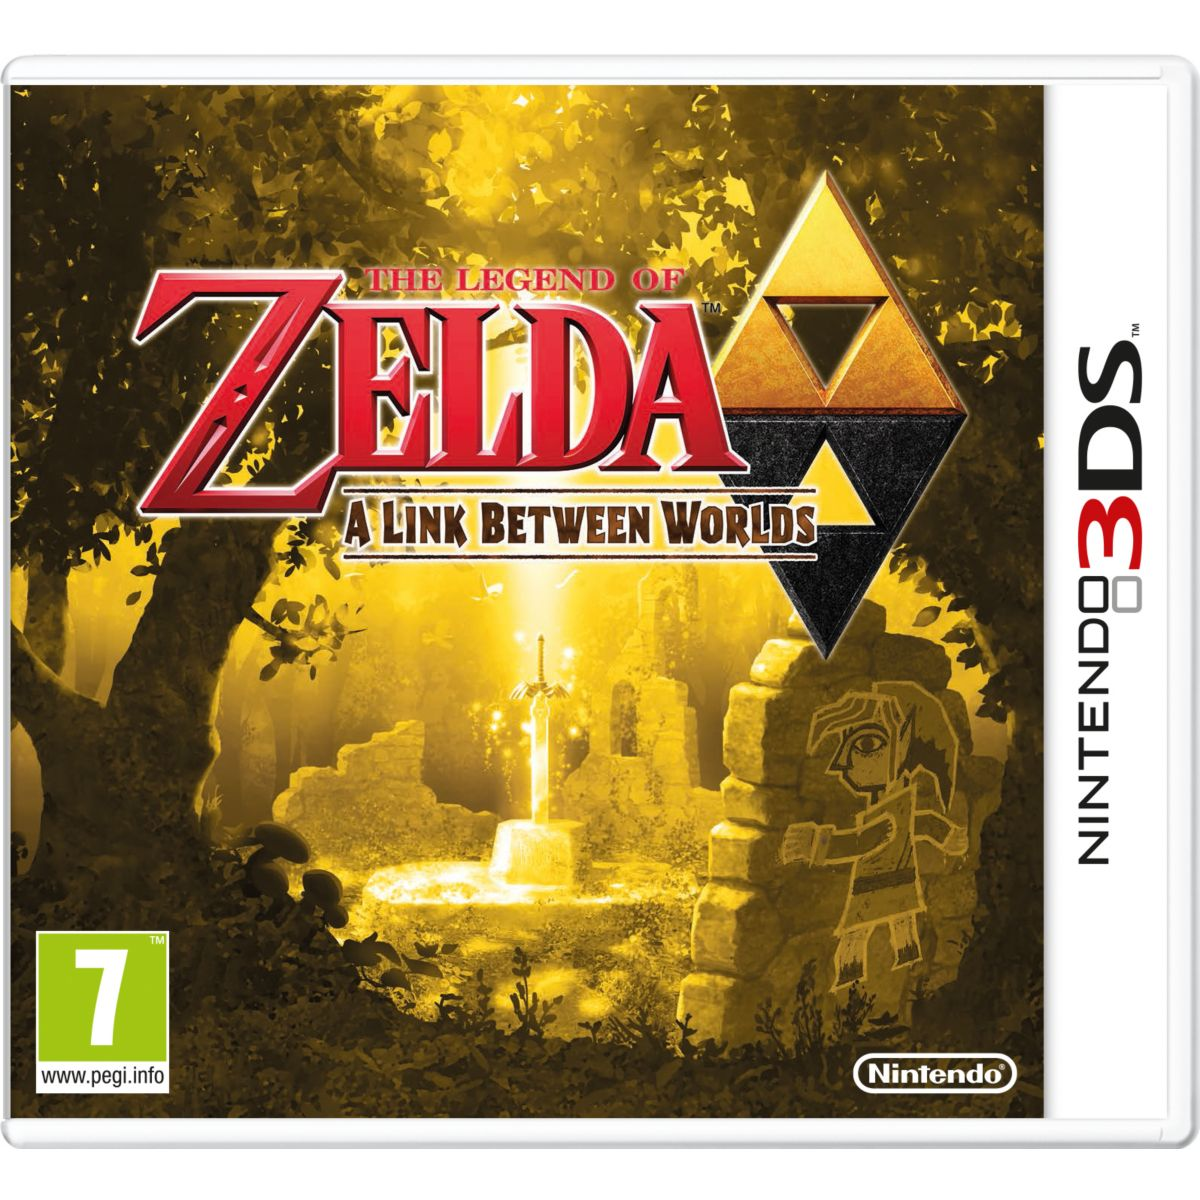 Jeu 3ds nintendo the legend of zelda a link between world selects - 2% de remise immédiate avec le code : cool2 (photo)